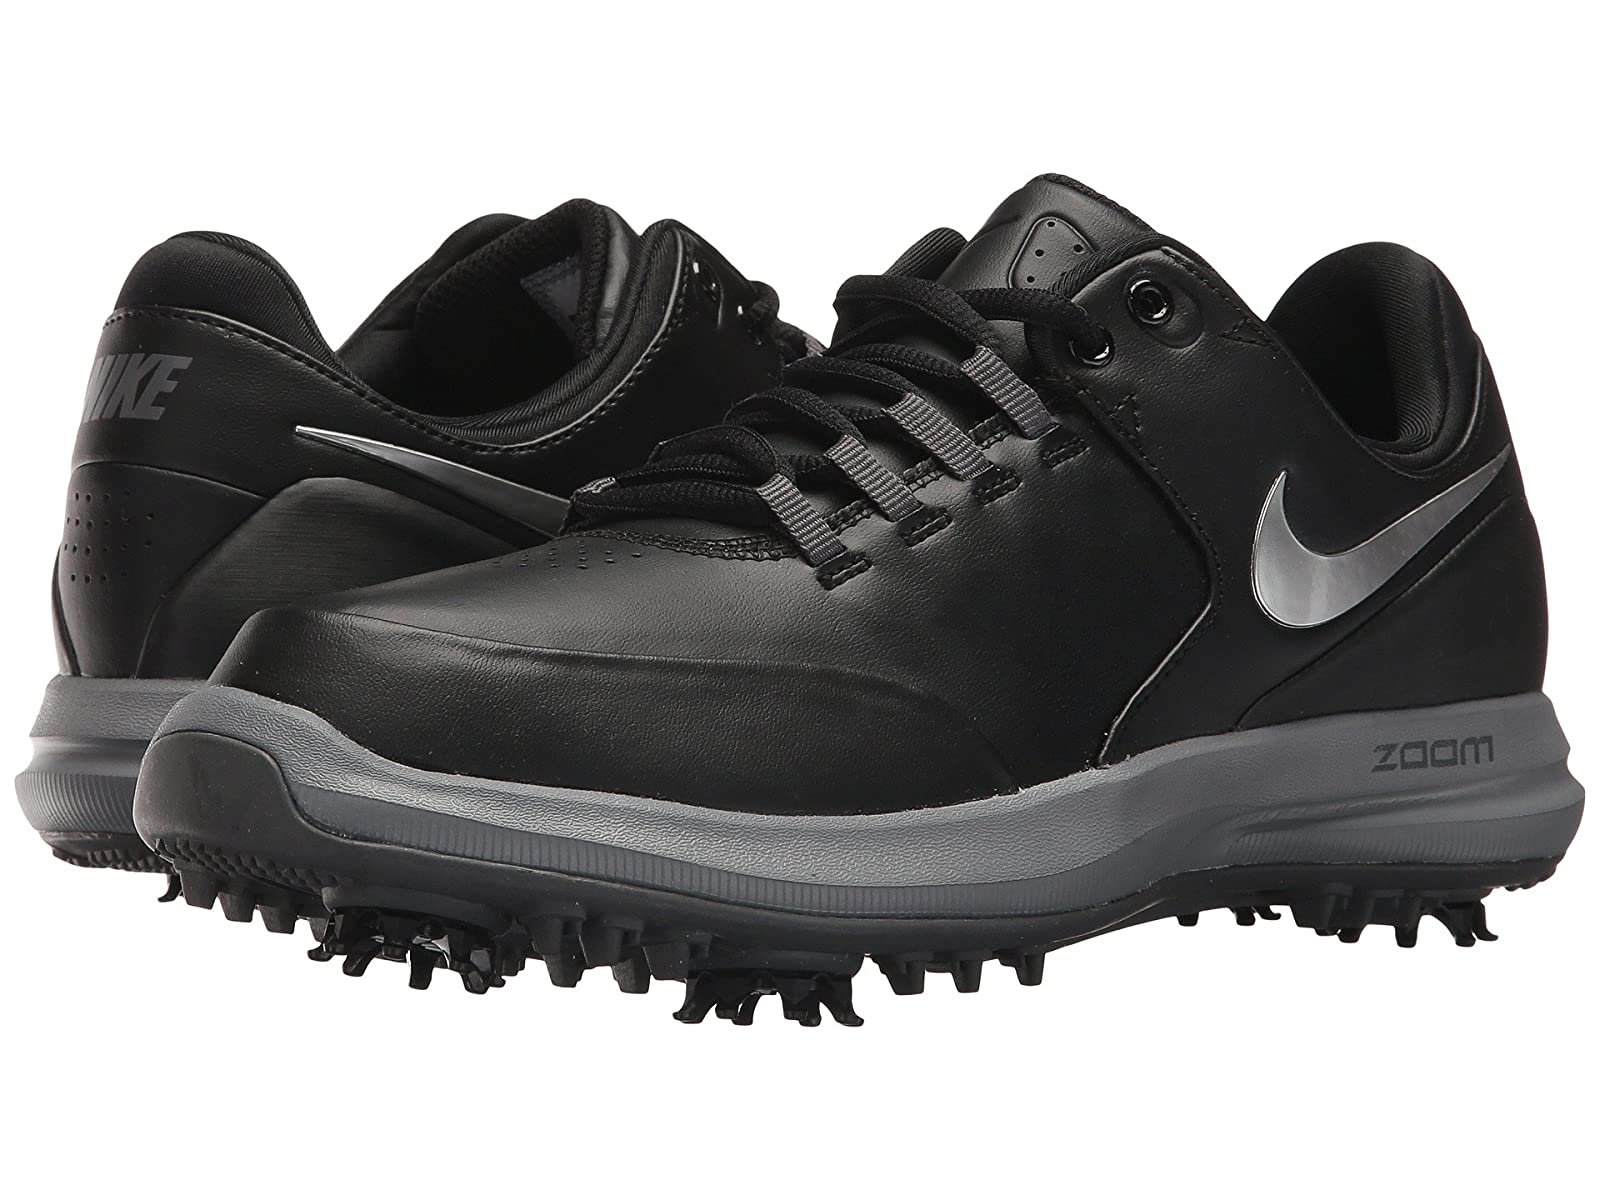 Nike Golf Air Zoom AccurateAtmospheric grades have affordable shoes